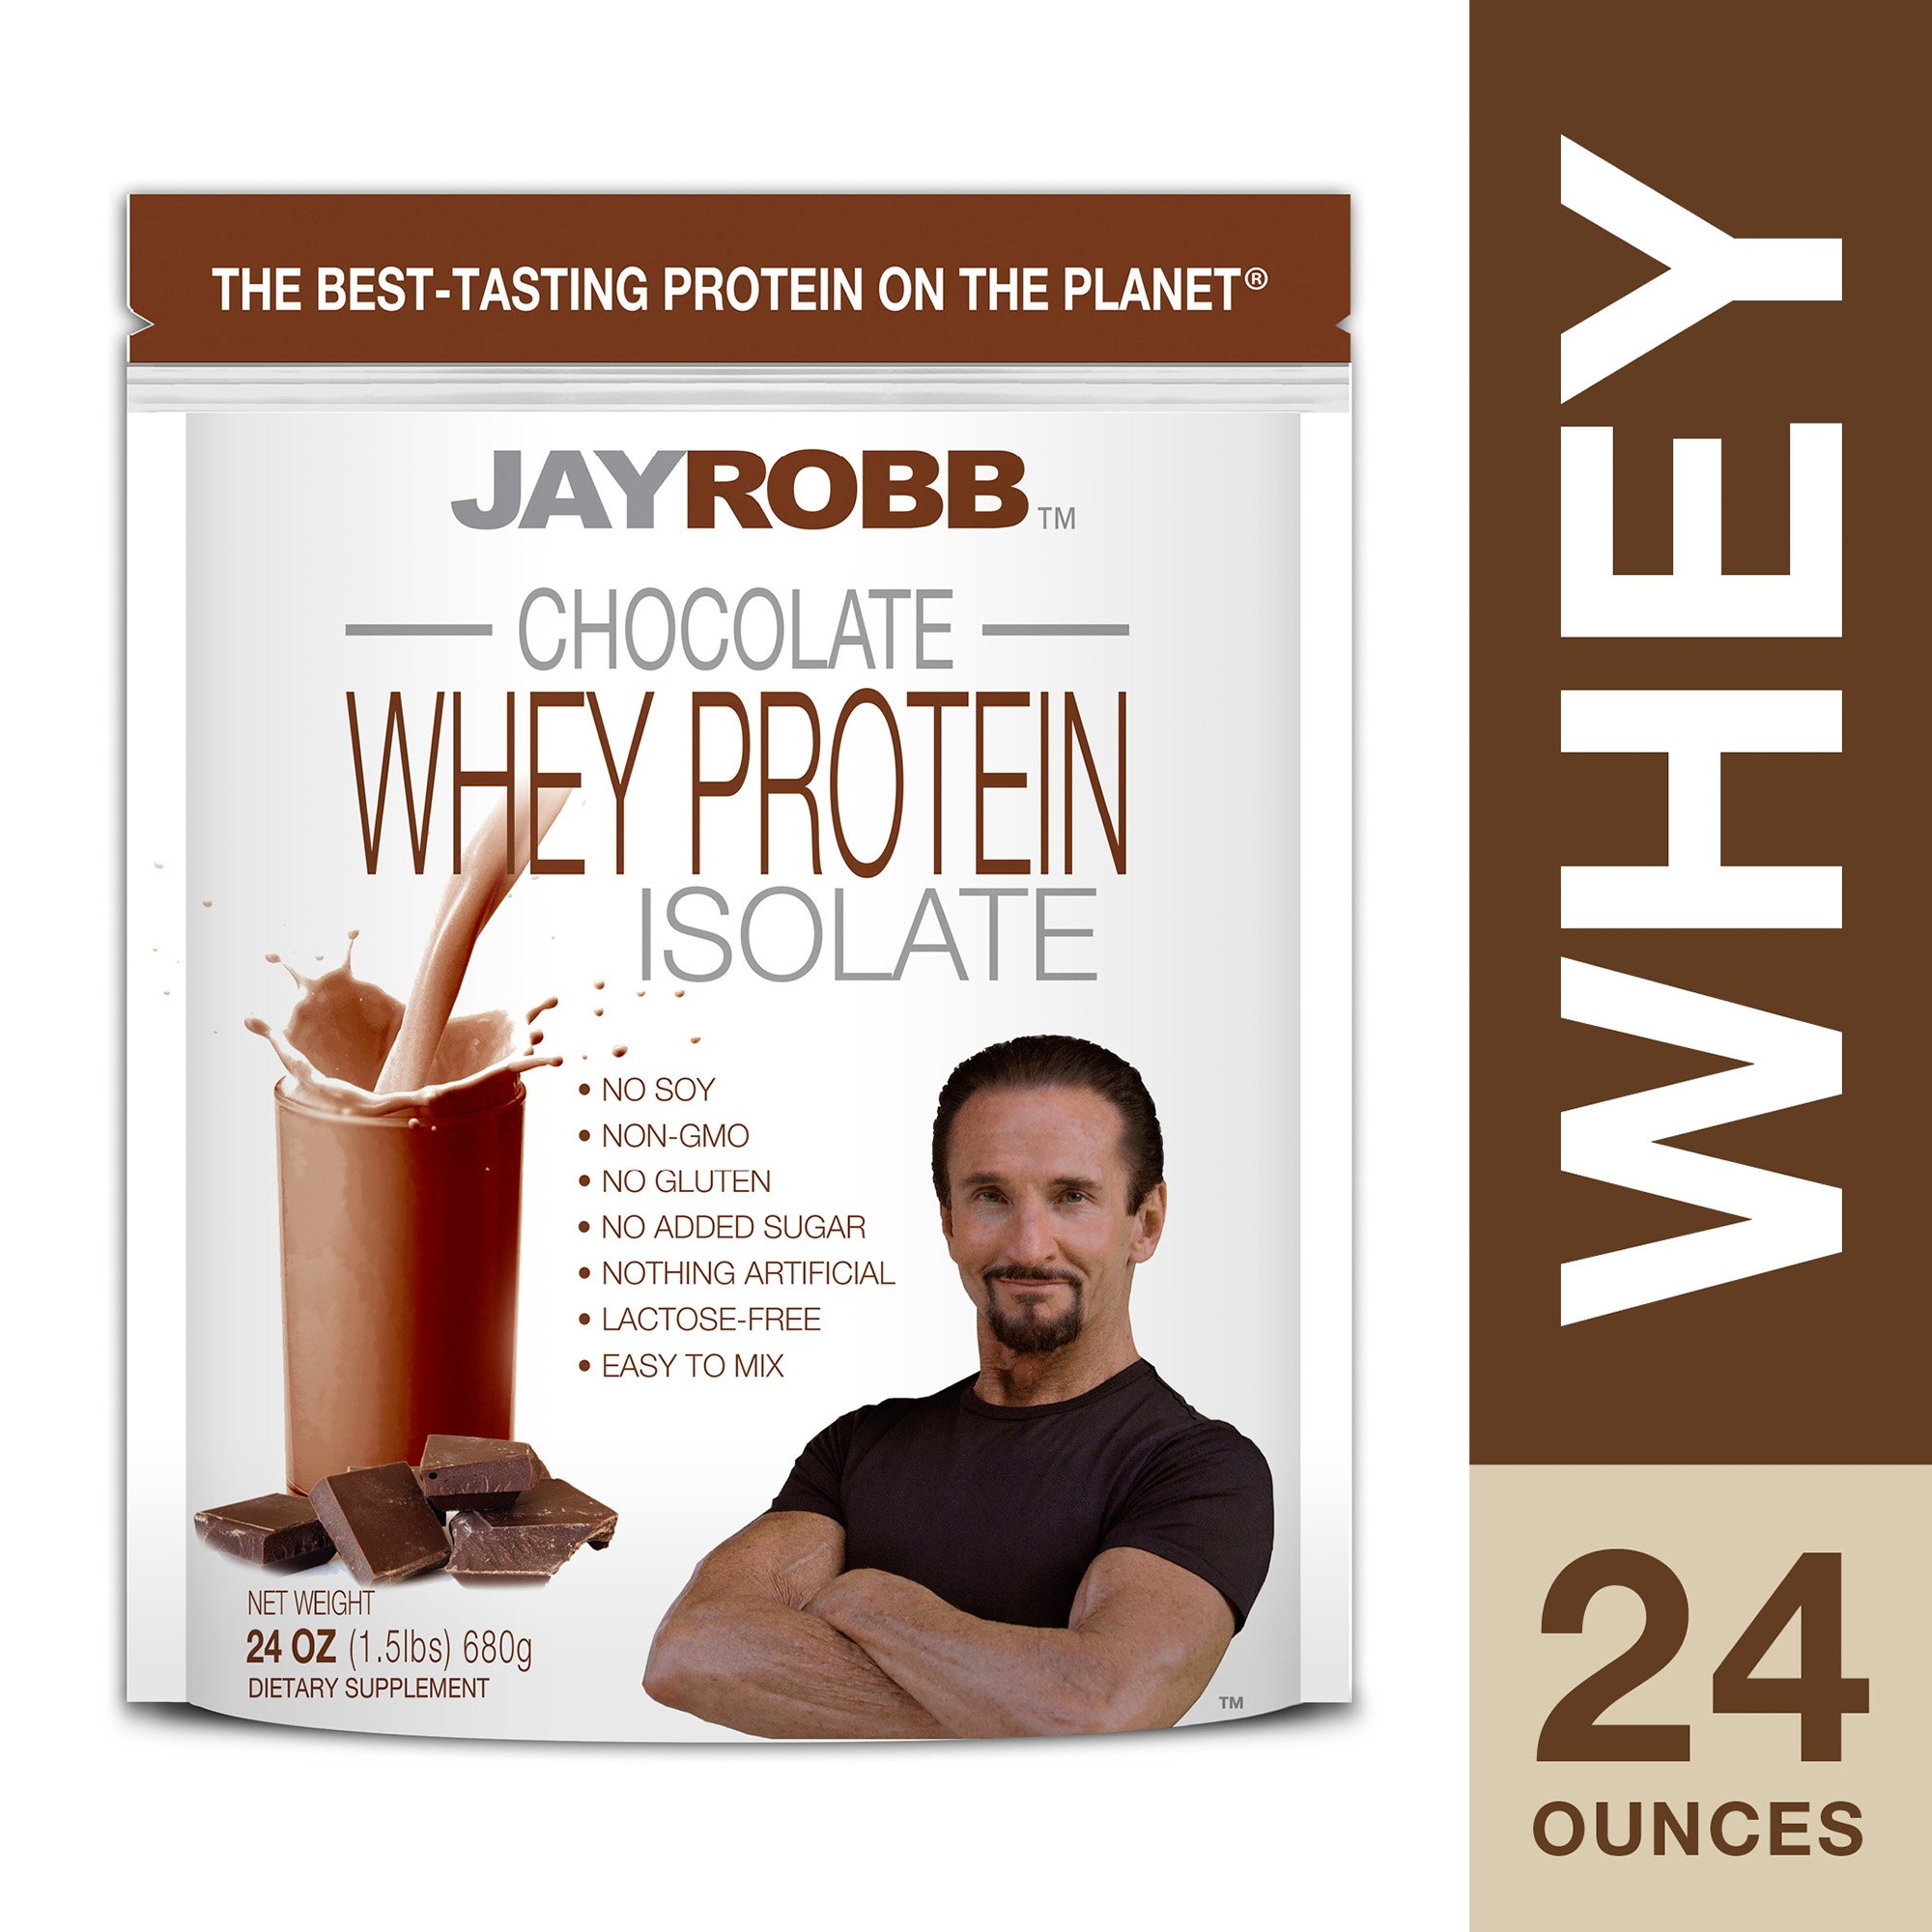 Jay Robb - Grass-Fed Whey Protein Isolate Powder, Outrageously Delicious, Chocolate, 23 Servings (24 oz) by Jay Robb